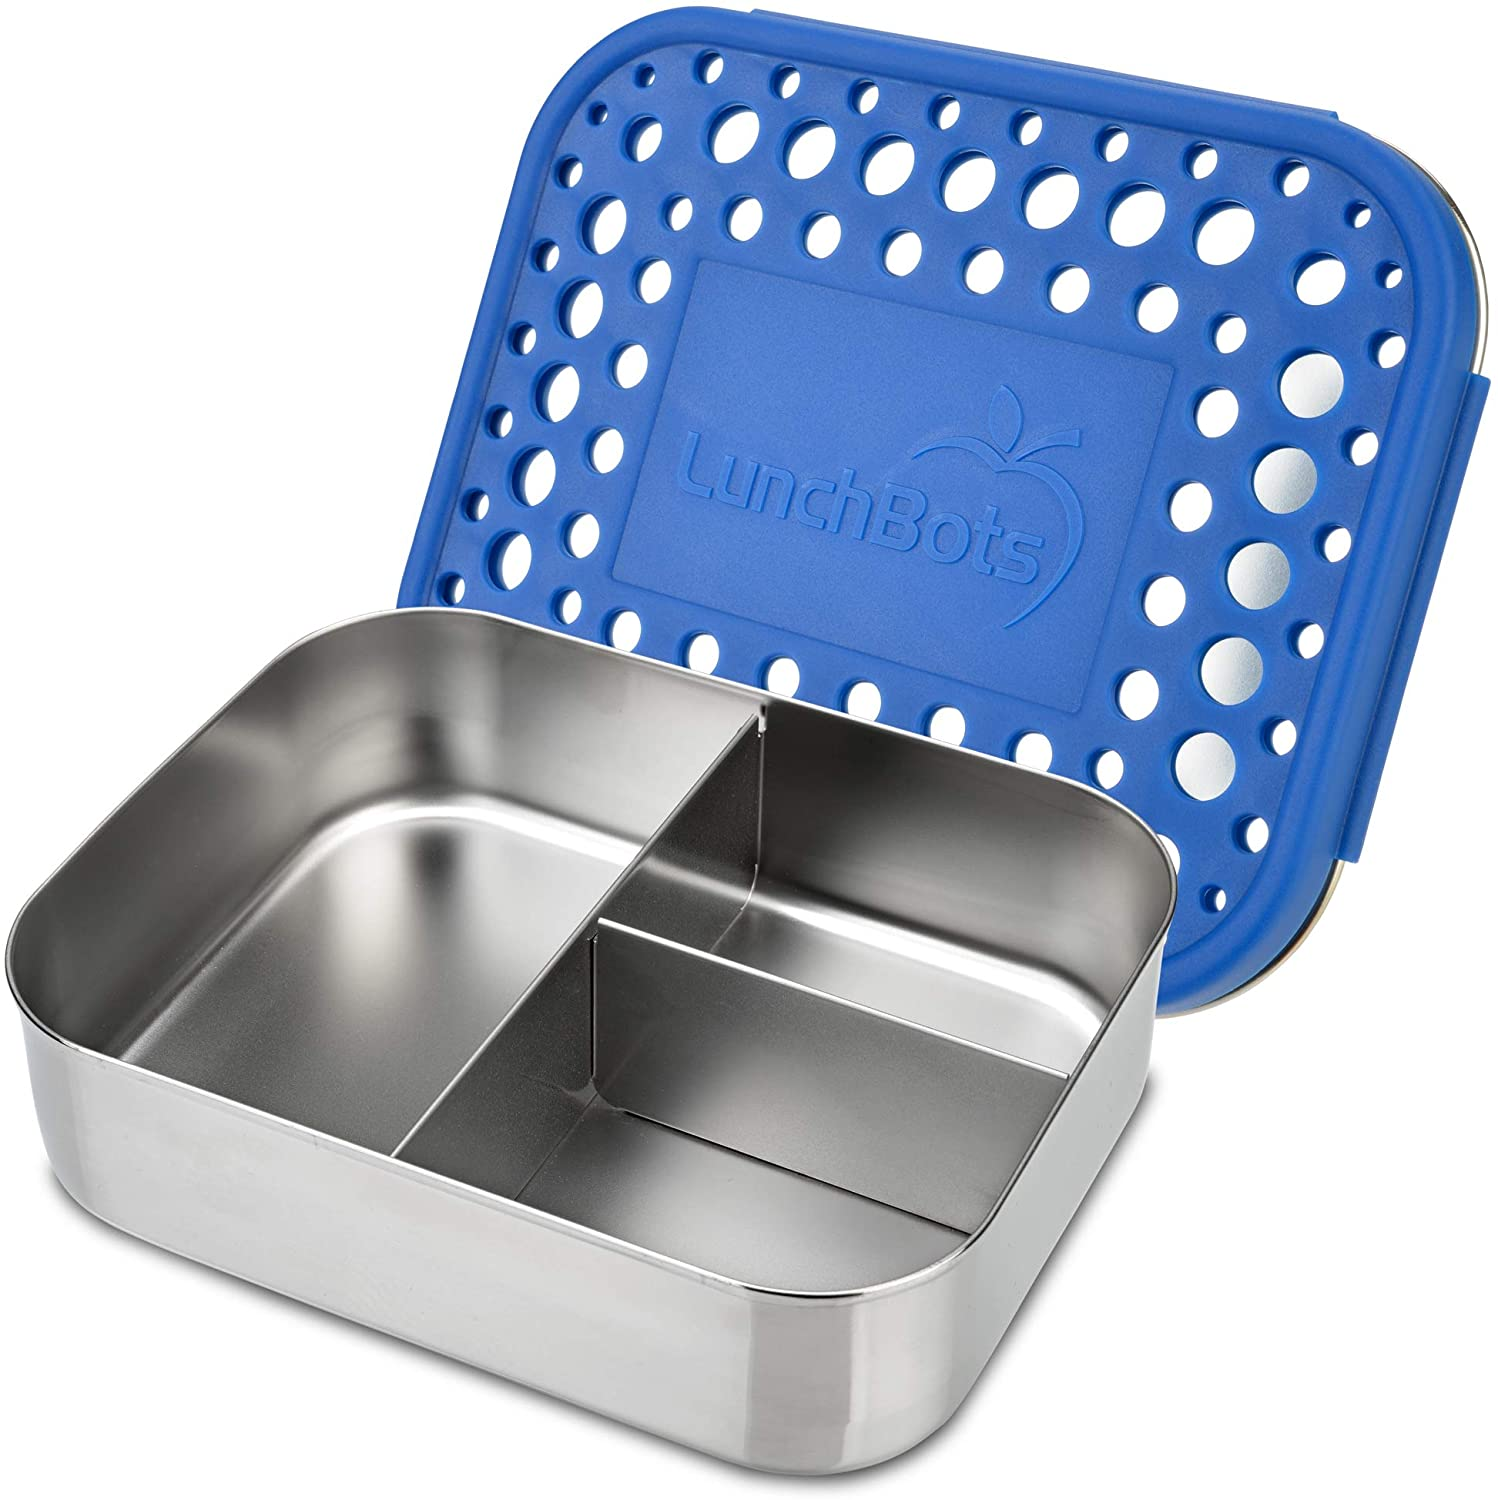 LunchBots Medium Trio II Snack Container - Divided Stainless Steel Food Container - Three Sections for Snacks On The Go - Eco-Friendly, Dishwasher Safe, BPA-Free - Stainless Lid - Blue Dots